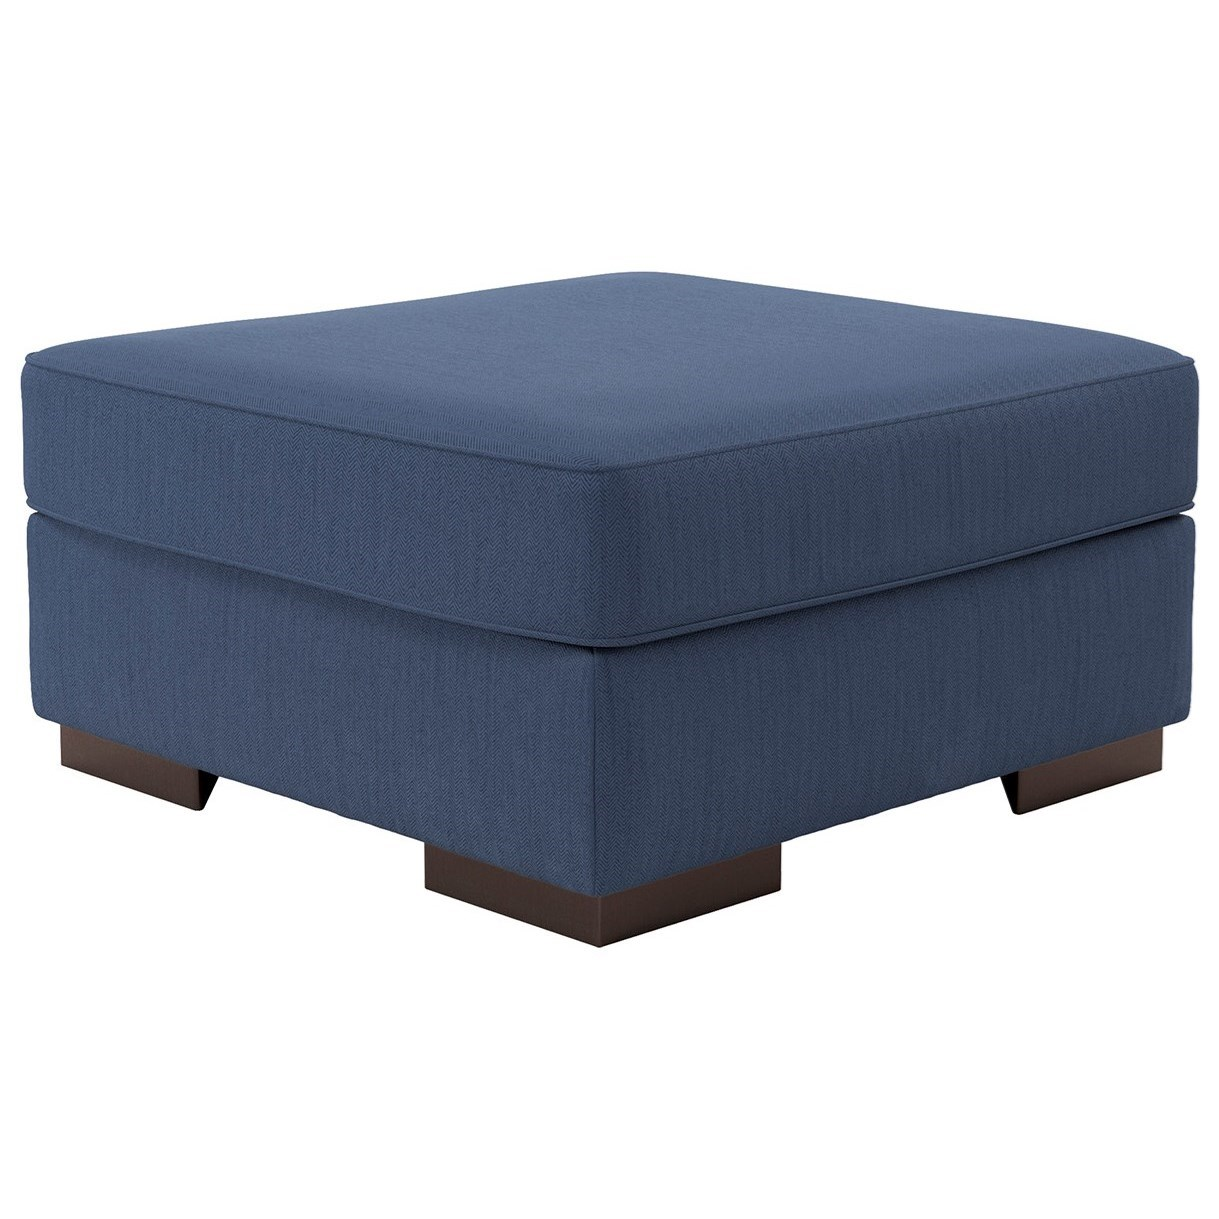 Ashlor Nuvella Oversized Accent Ottoman by Ashley Furniture at Lapeer Furniture & Mattress Center